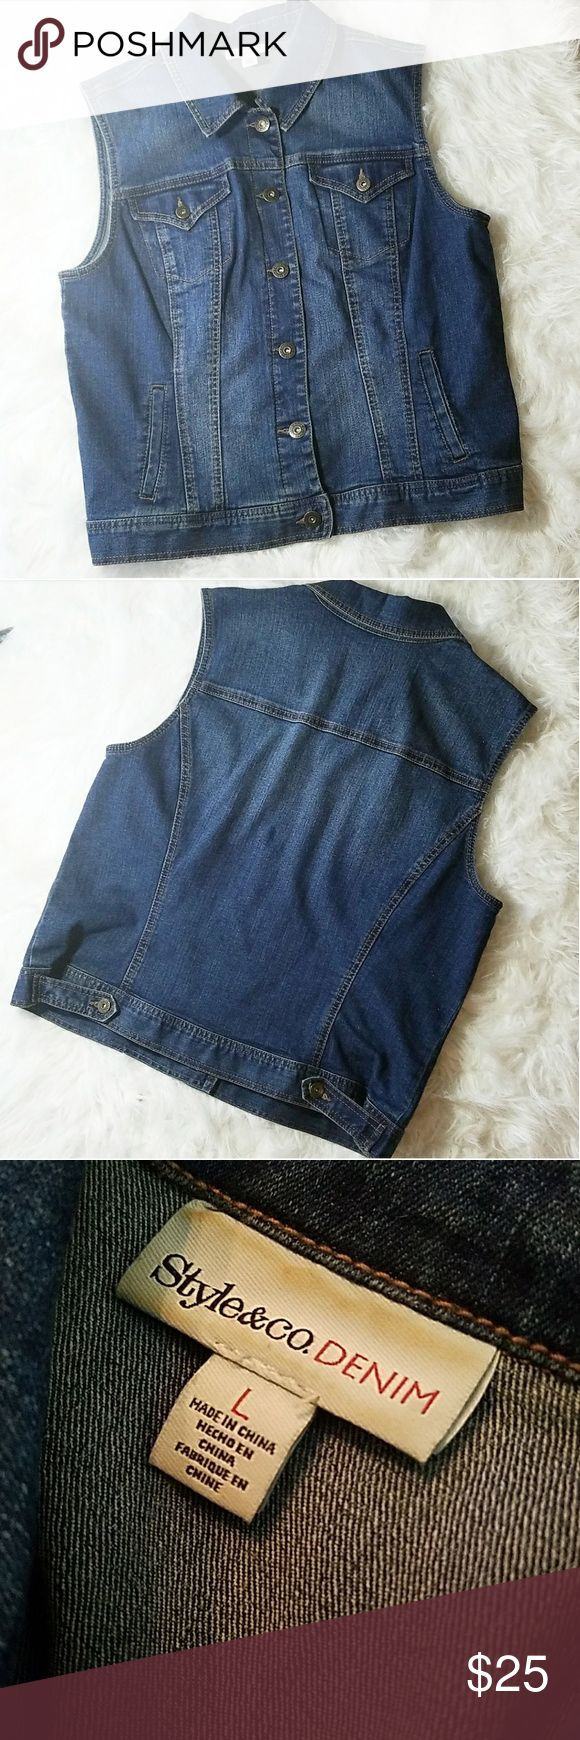 Style & Co Denim Vest Style and Co. Denim Vest in like new conditon. It is adjustable in the back! I offer bundle discounts if you would like any other items in my closet! Style & Co Jackets & Coats Vests